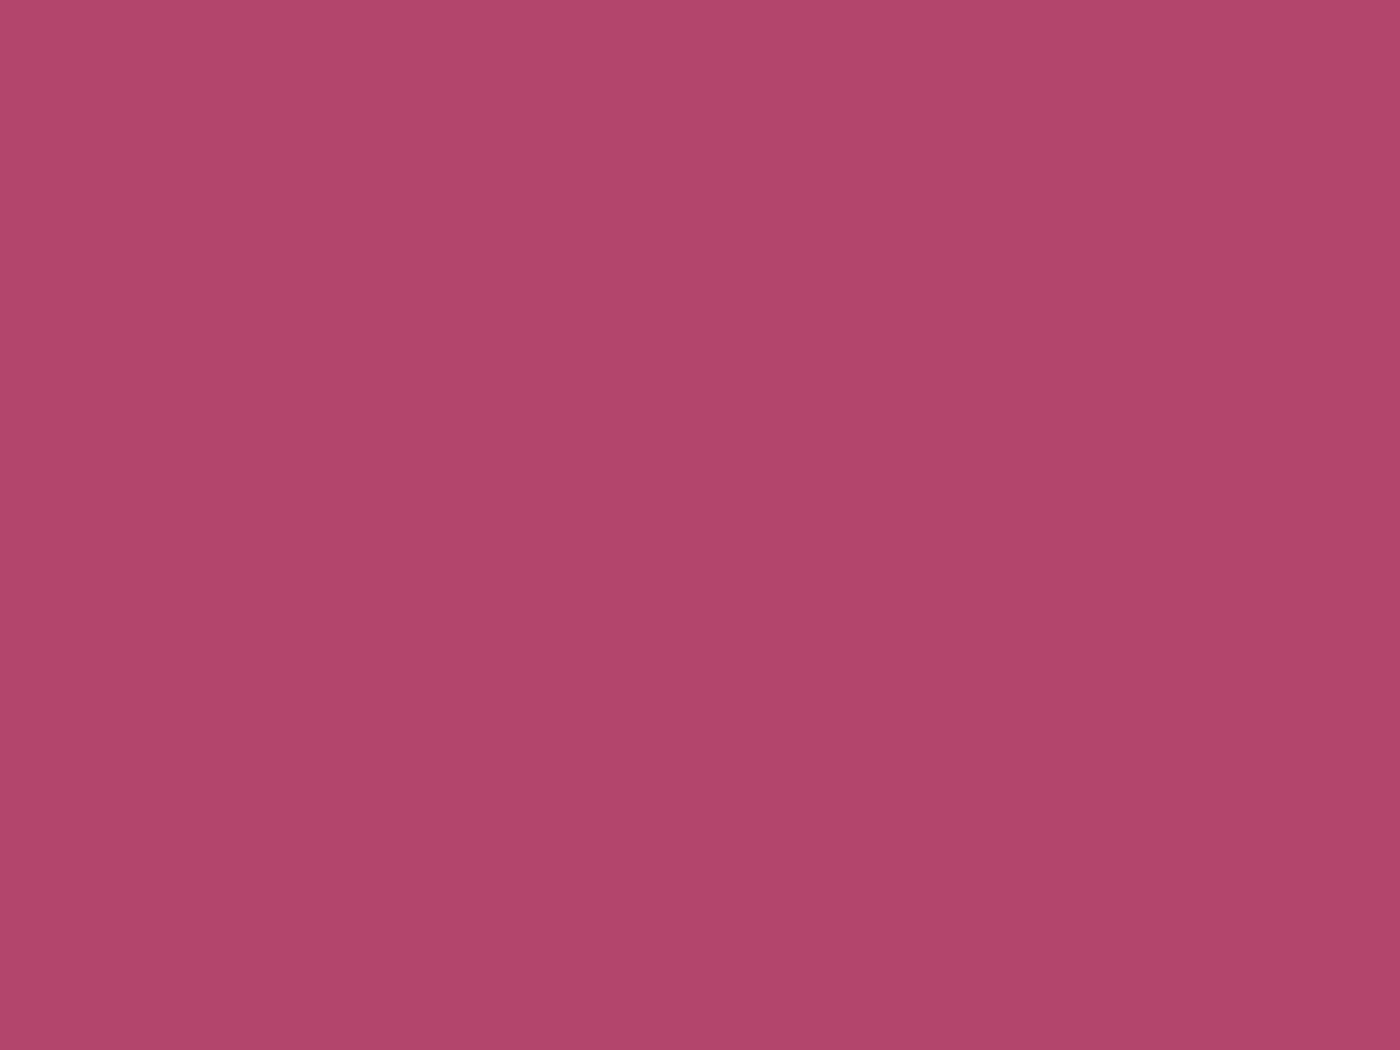 1400x1050 Raspberry Rose Solid Color Background